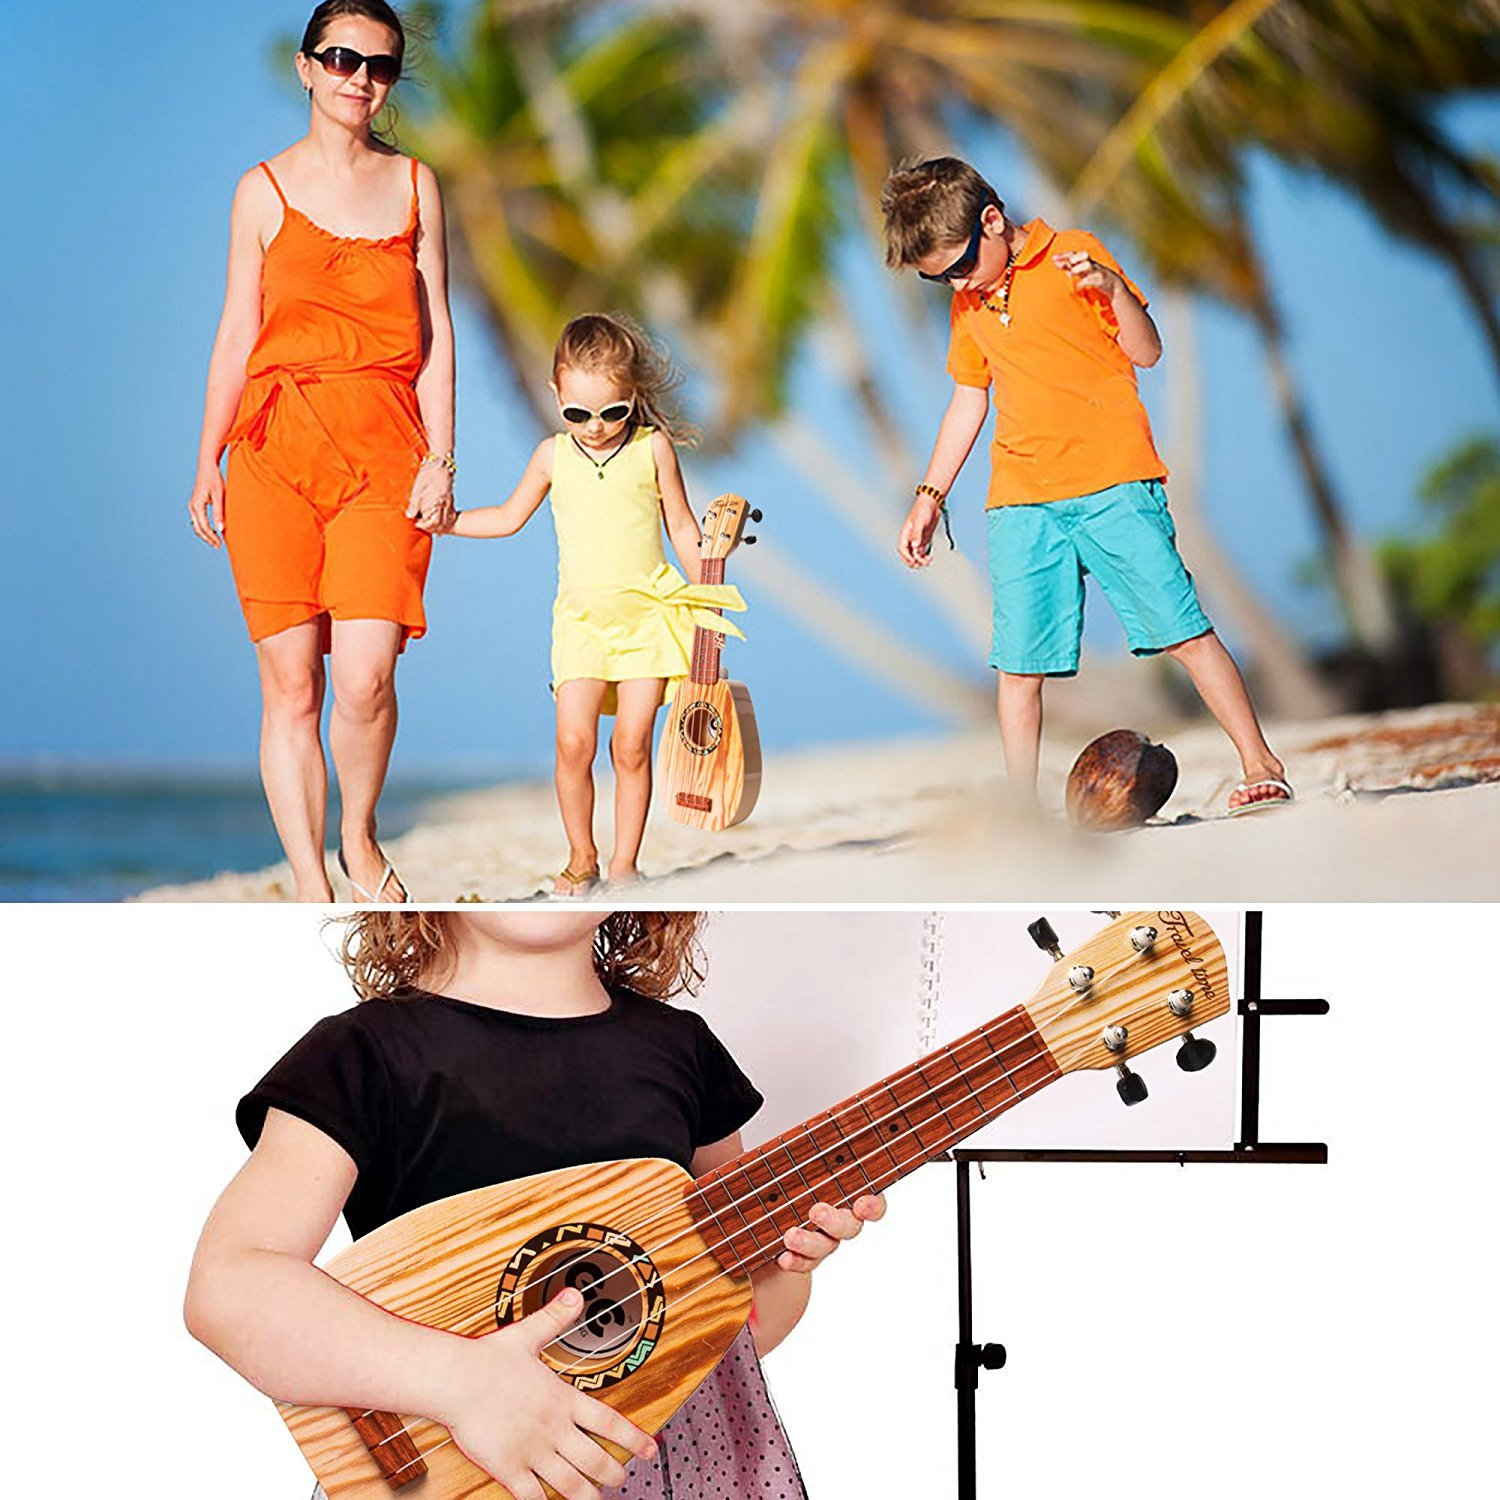 17 Inch Ukulele-2 17 Inch Mini Guitar Ukulele Toy For Kids,Guitar Children Educational Learn Guitar Ukulele With the Picks and Strap Can Play Musical Instruments Toys